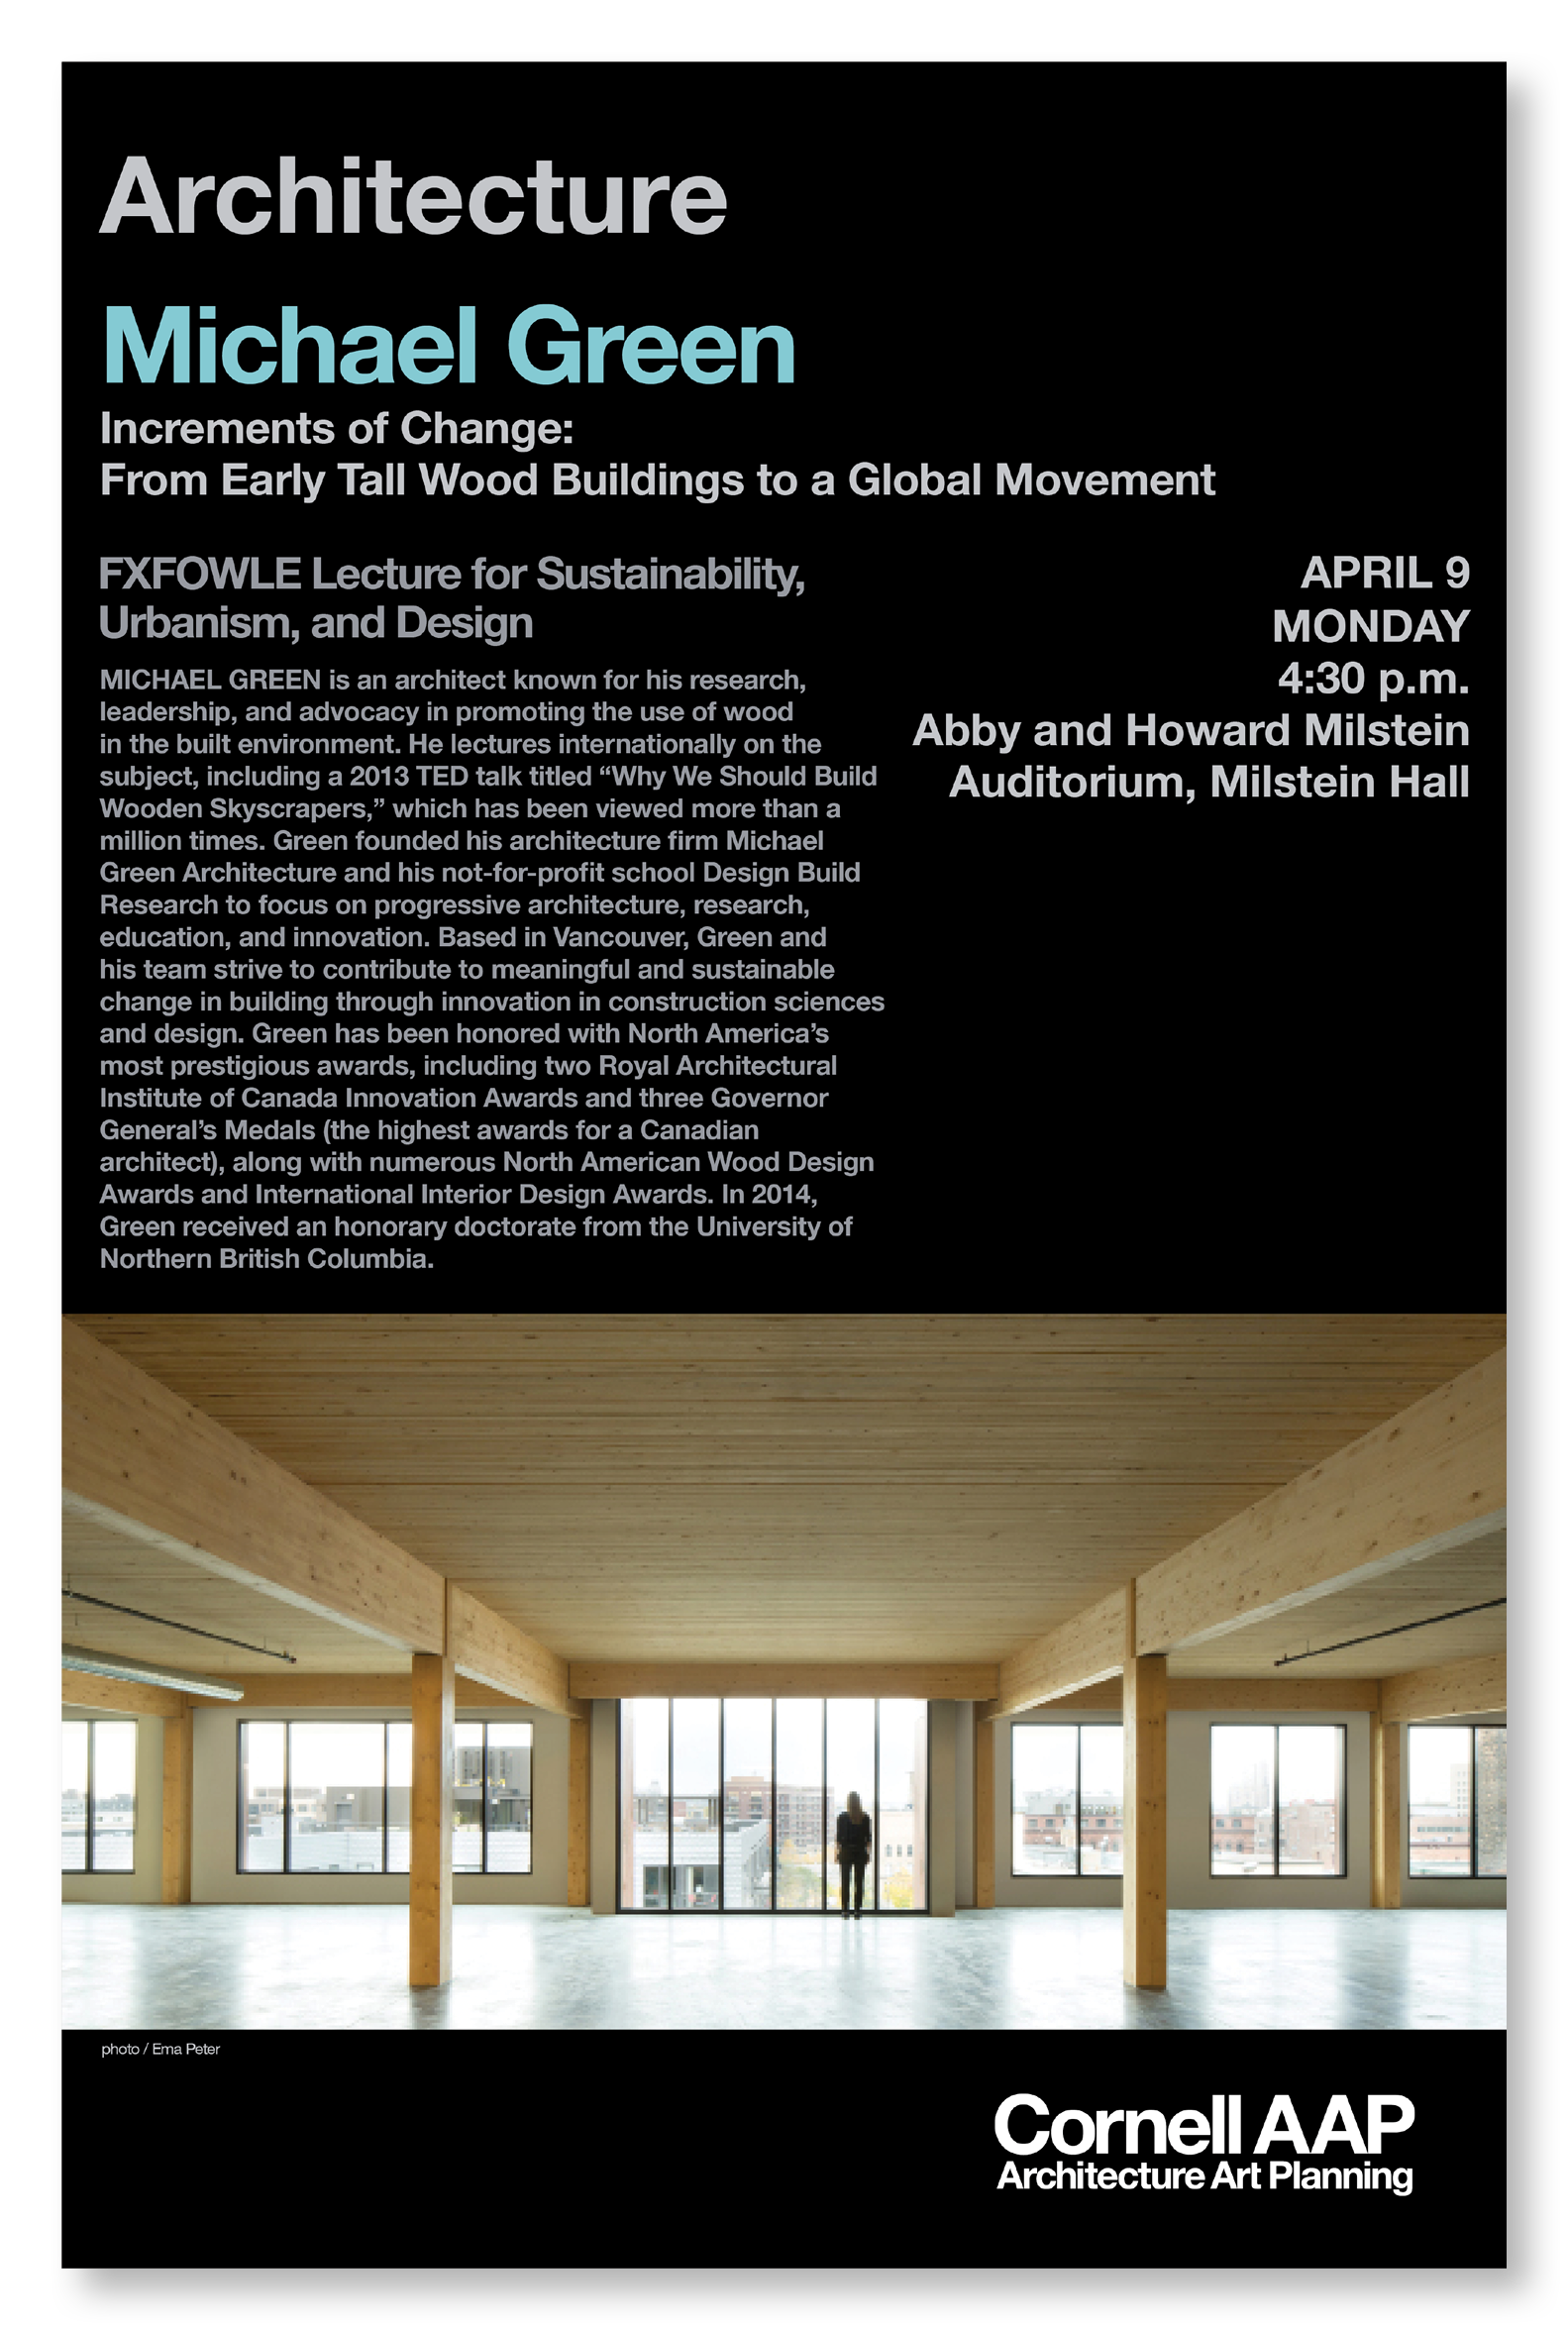 poster for an architecture lecture showing image and text usage